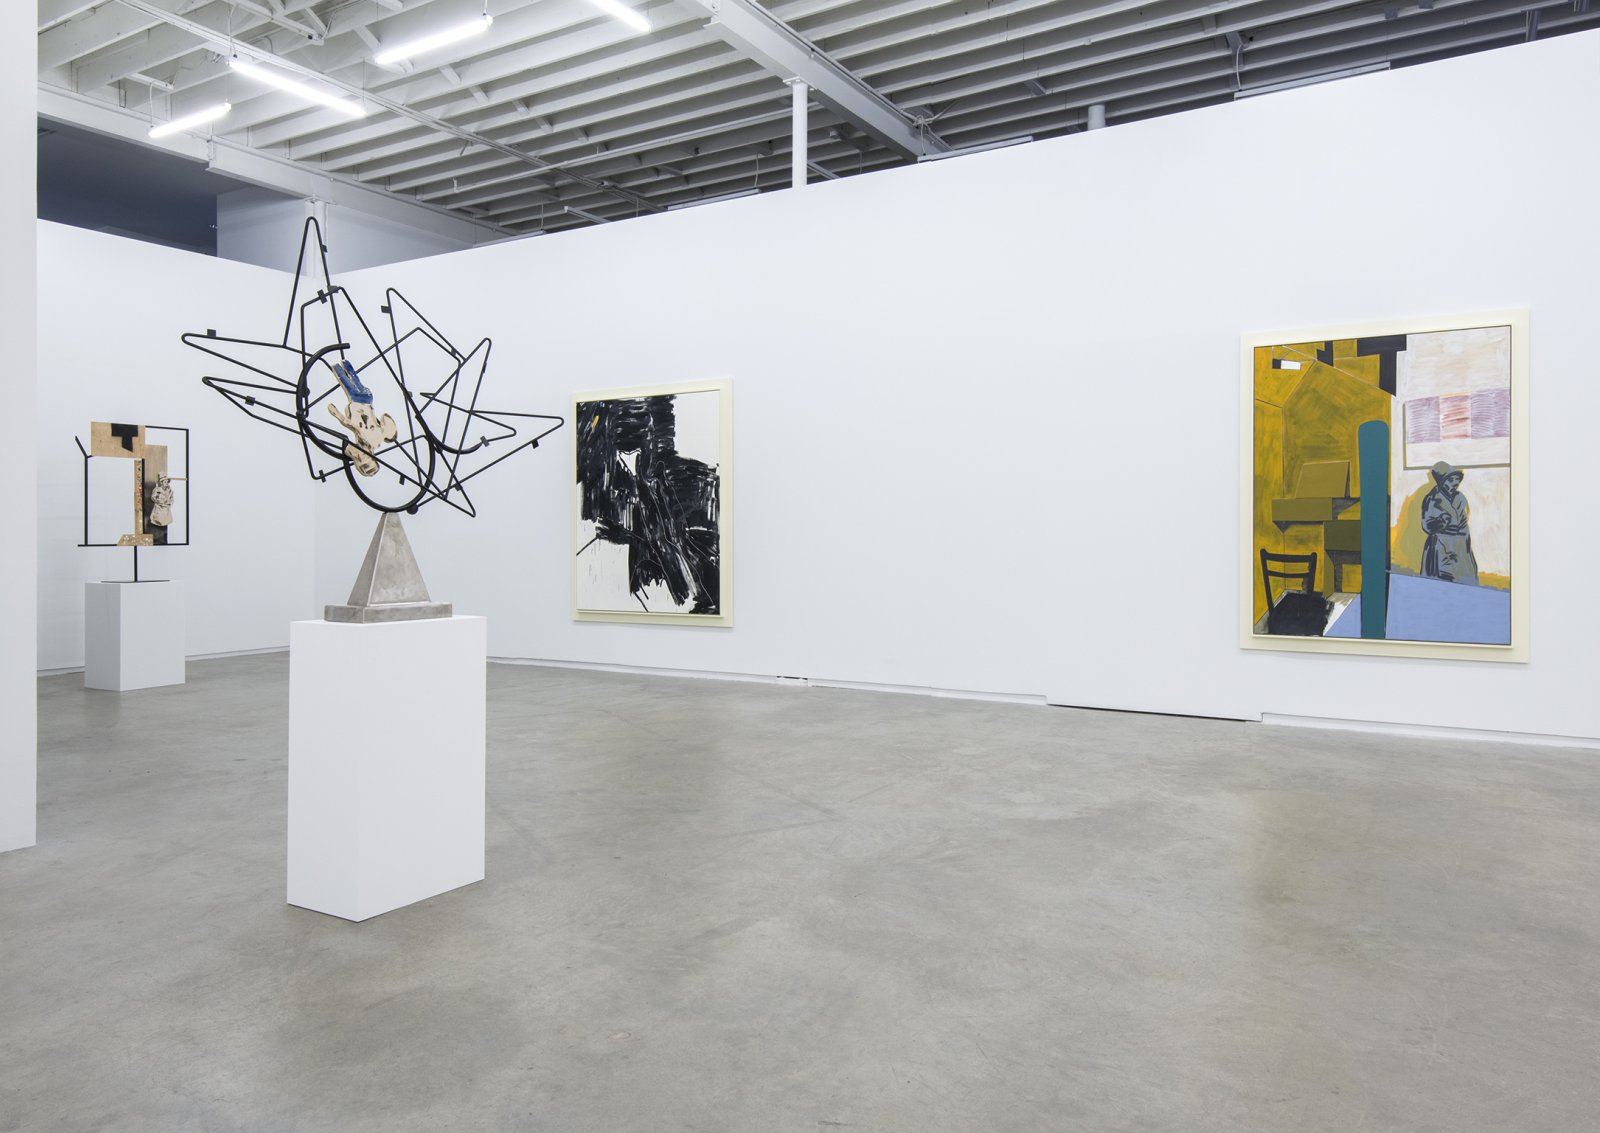 Damian Moppett, installation view, Salute, Catriona Jeffries, 2013​​ by Damian Moppett